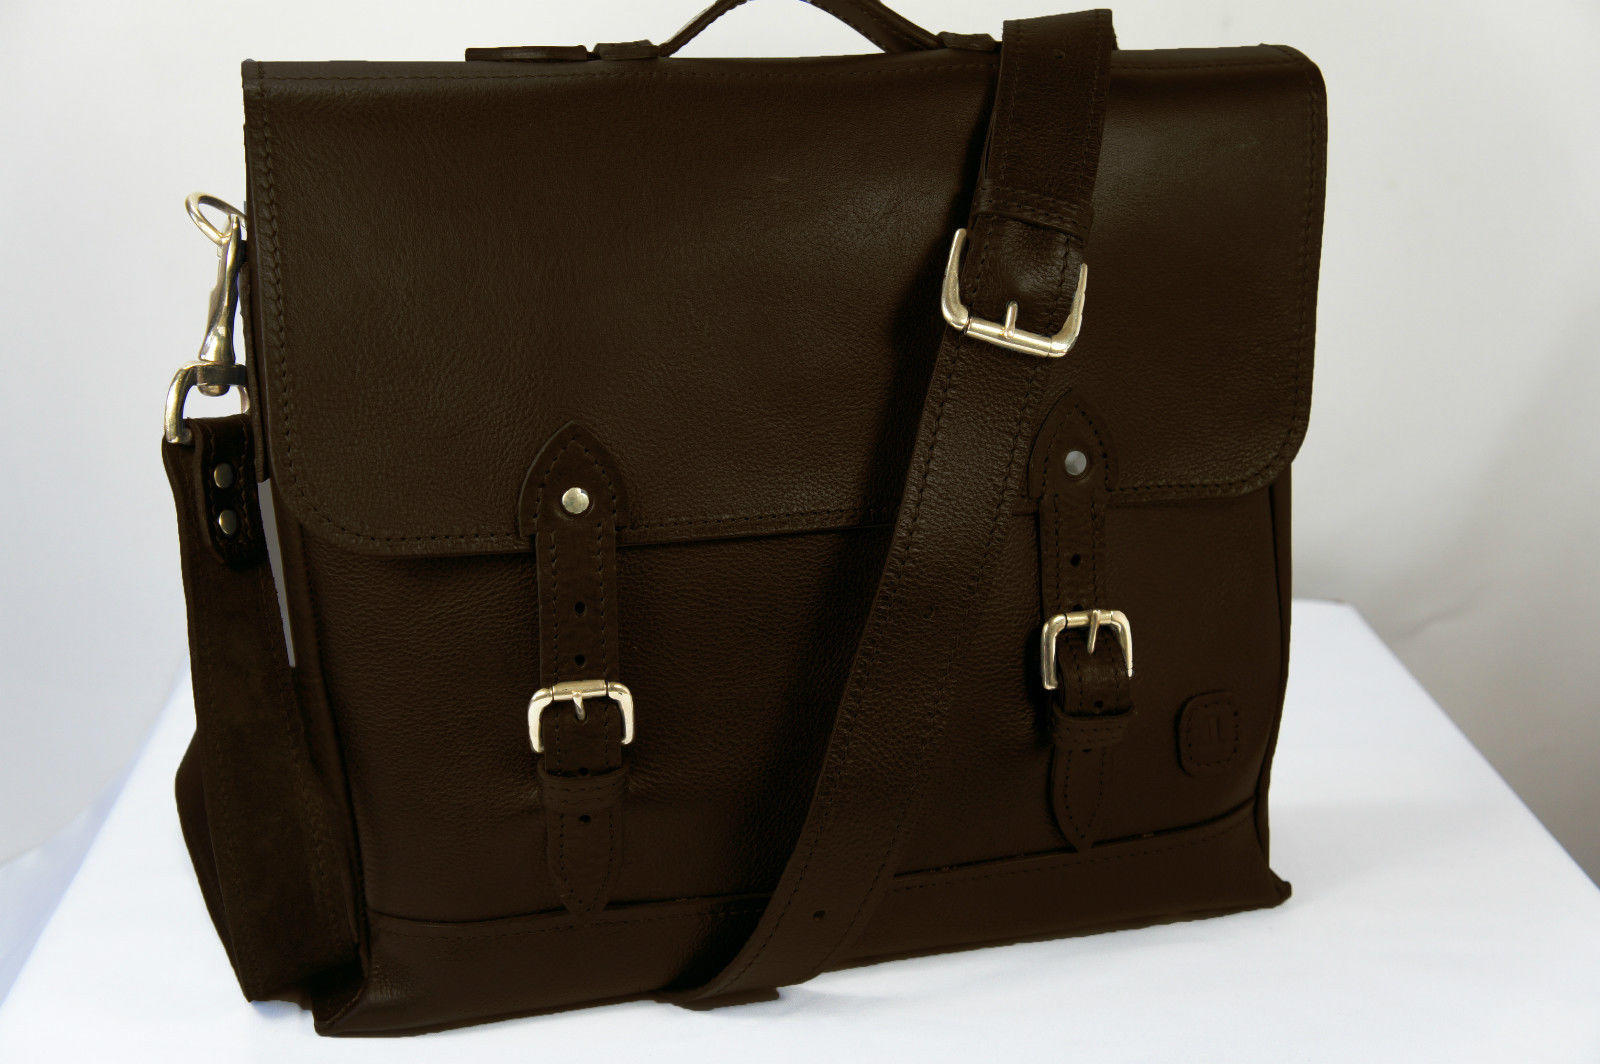 ISAMBARD Dundry Satchel In Soft Natural Veg Tanned Leather - Dar